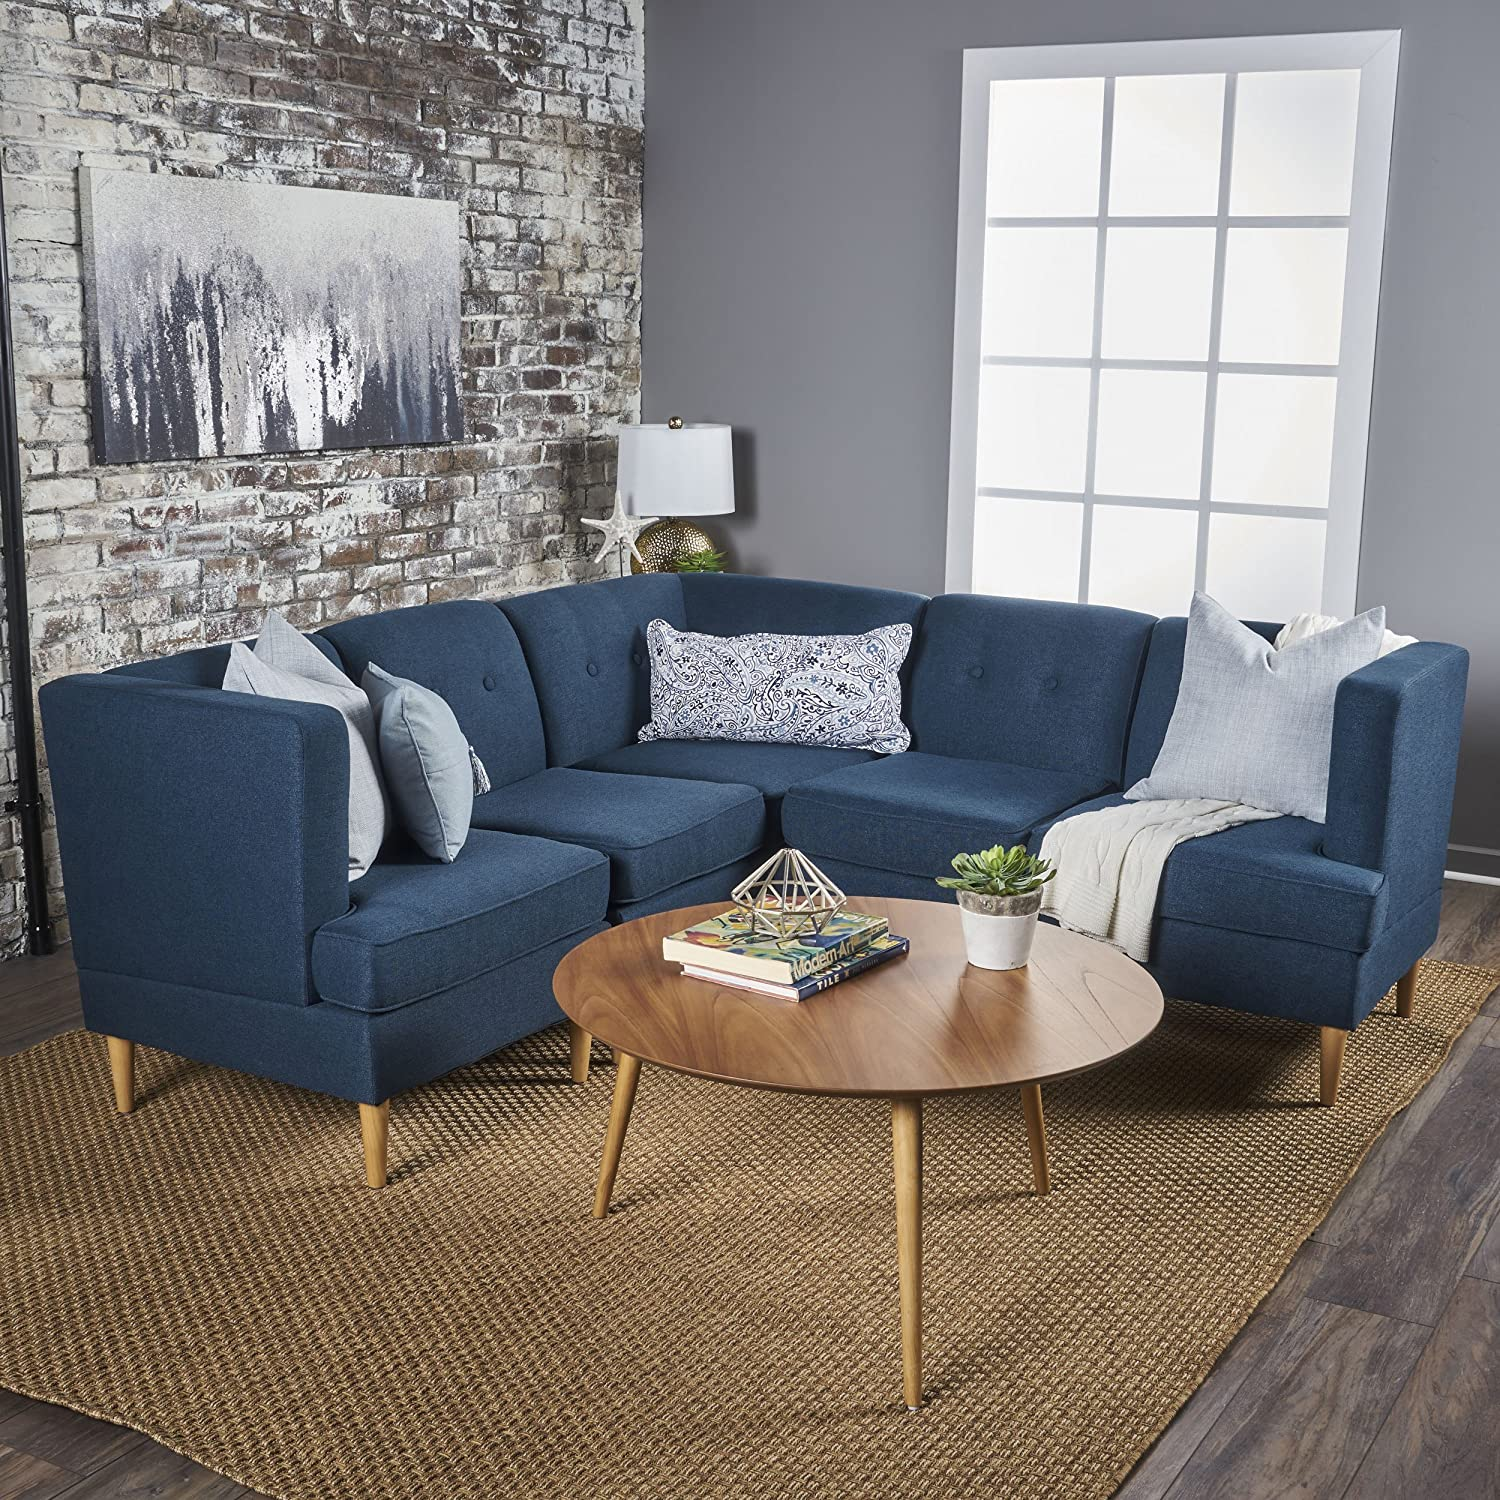 Milltown 5pc mid century tufted modular sectional sofa with birch wood legs comfortable convertible interlocking danish modern furniture set navy blue